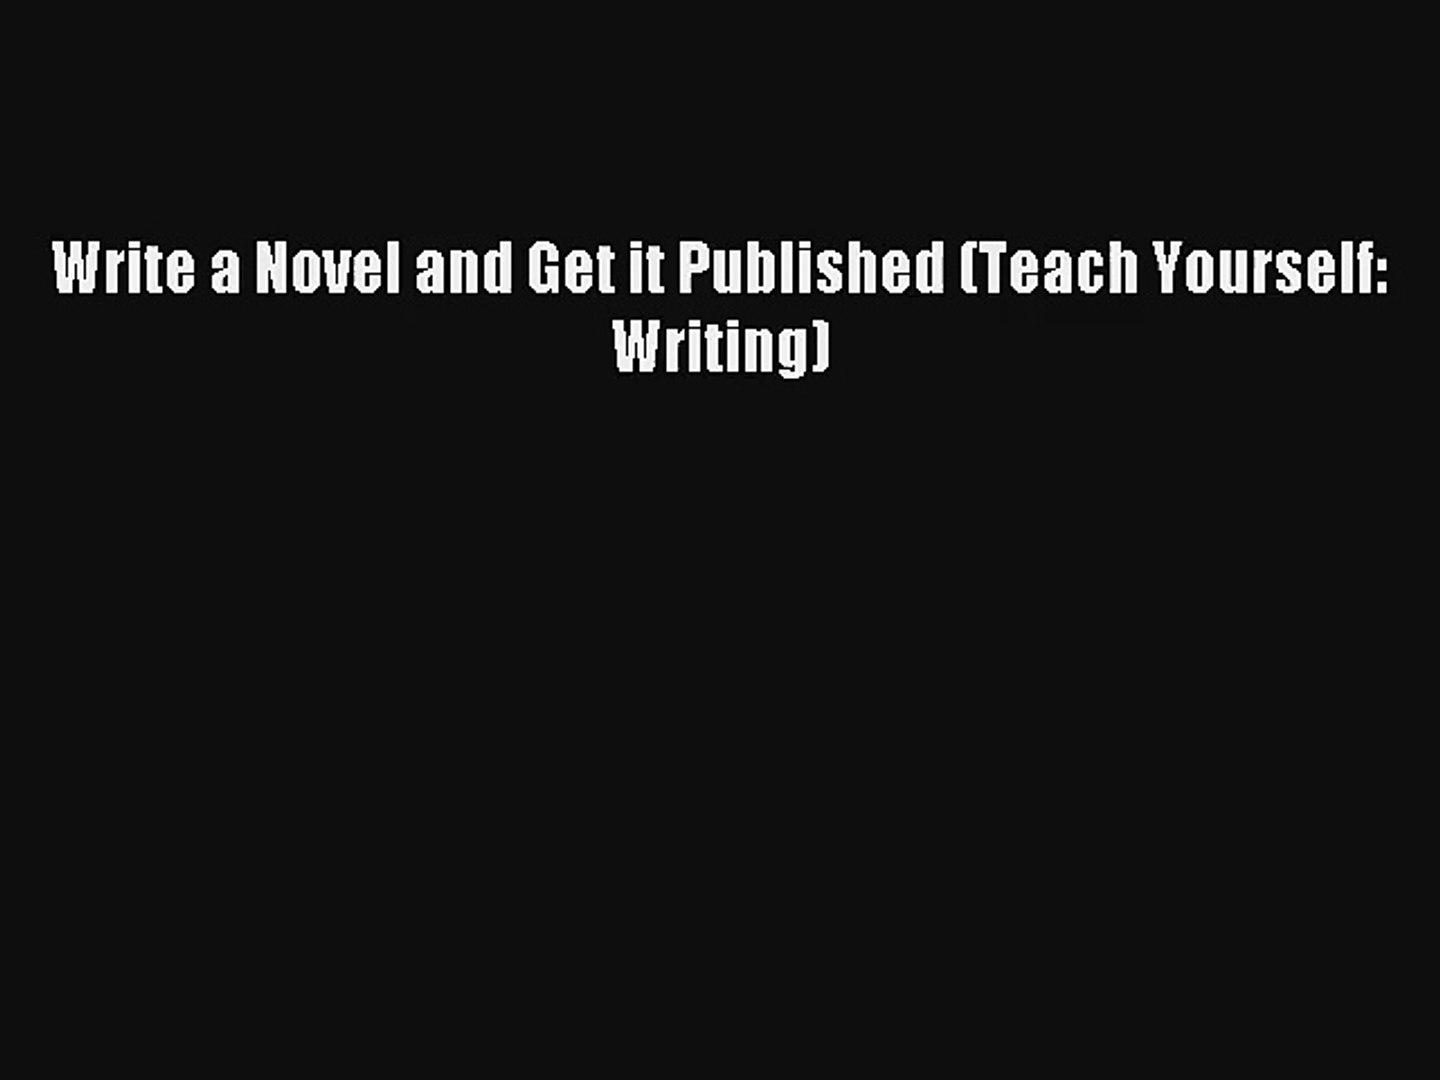 [Read] Write a Novel and Get it Published (Teach Yourself: Writing) Online